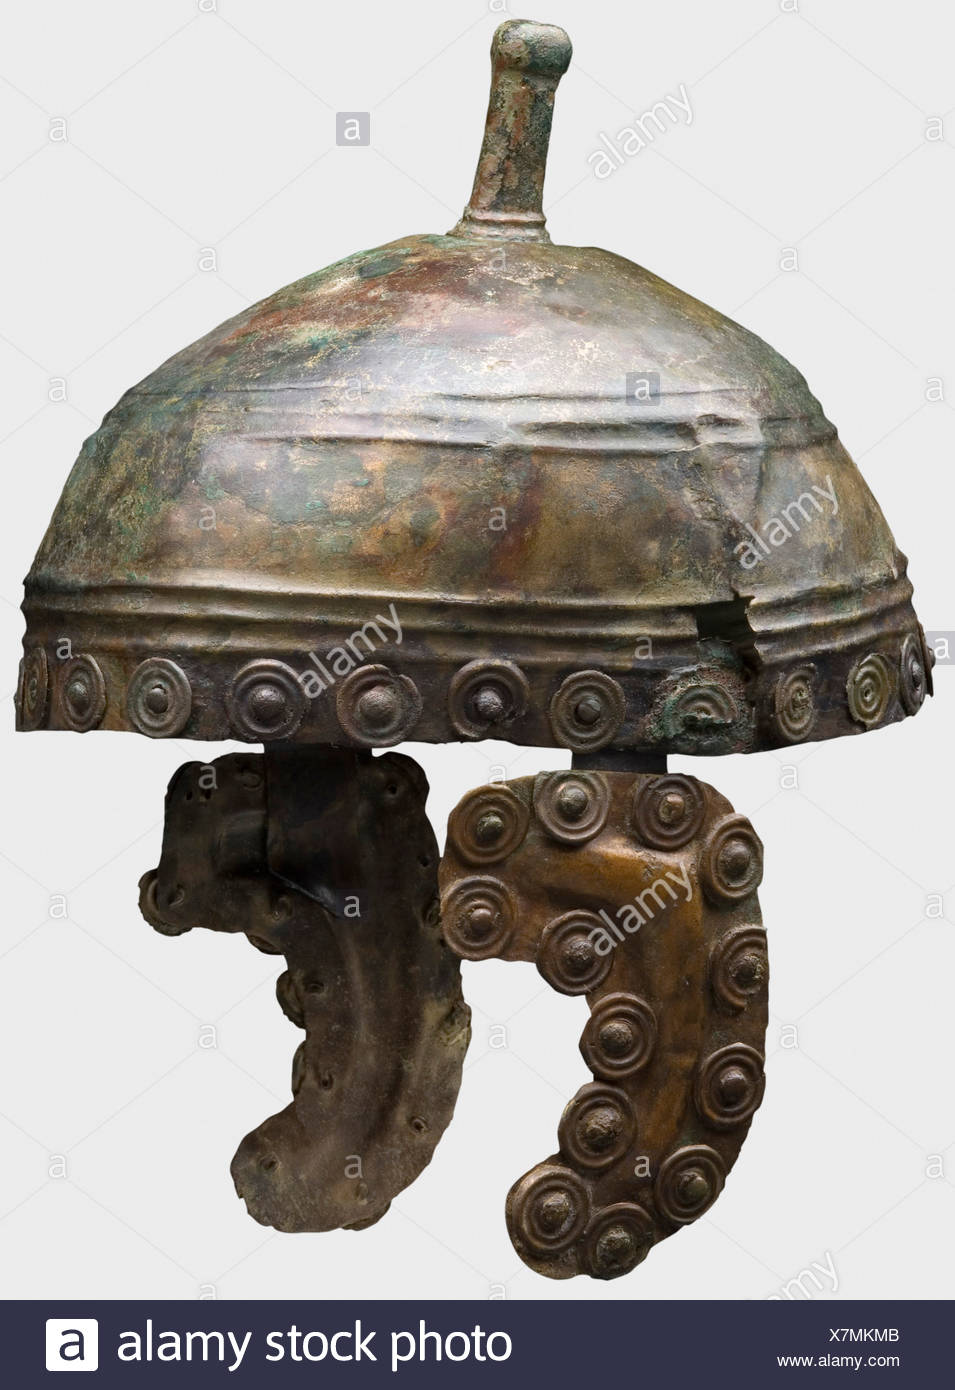 A Bronze Age helmet, 13th/12th century B.C. Shallow bronze skull with two bands of triple ridges and a cast-on helmet knob with a cylindrical opening for the helmet crest. Curved cheek pieces, formerly attached to the helmet lining. Decorative discs riveted around the perimeter of the helmet and the cheekpieces. Total height 16.5 cm. Weight 483 g. In addition decorative mountings, two bracelets, and an arrow head. The metal is well-preserved with a green patina in places, and organic and dirt residue. Slightly deformed. Cracked on one side. The interior stabili, Additional-Rights-Clearances-NA - Stock Image